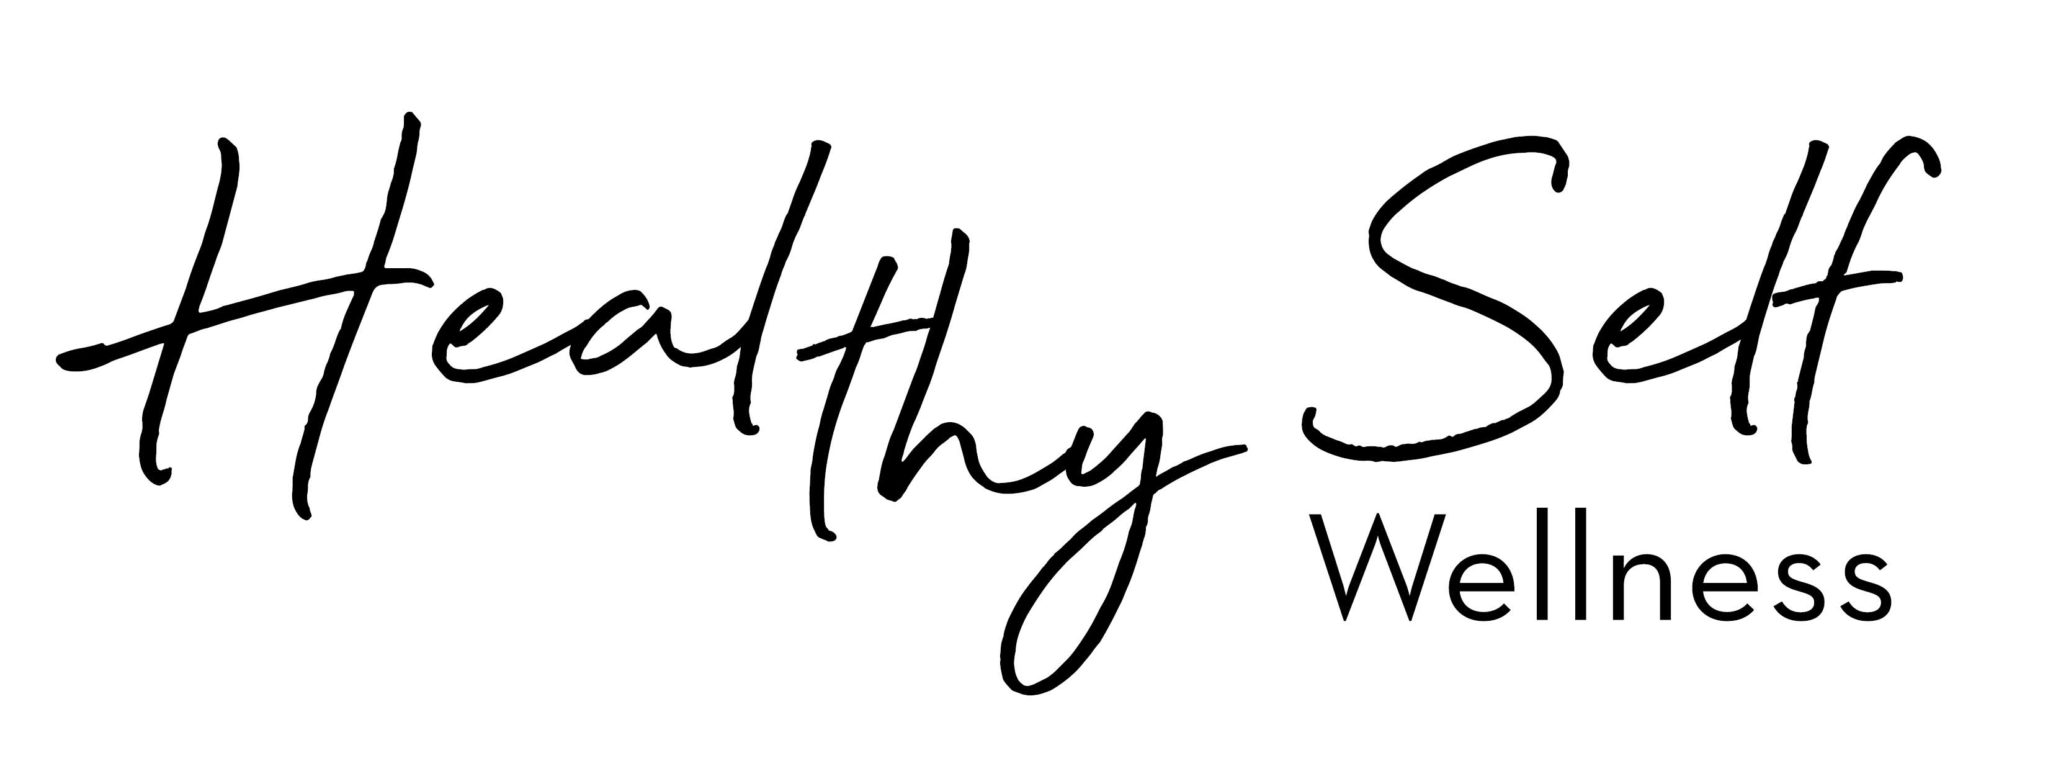 Healthy Self Wellness Logo